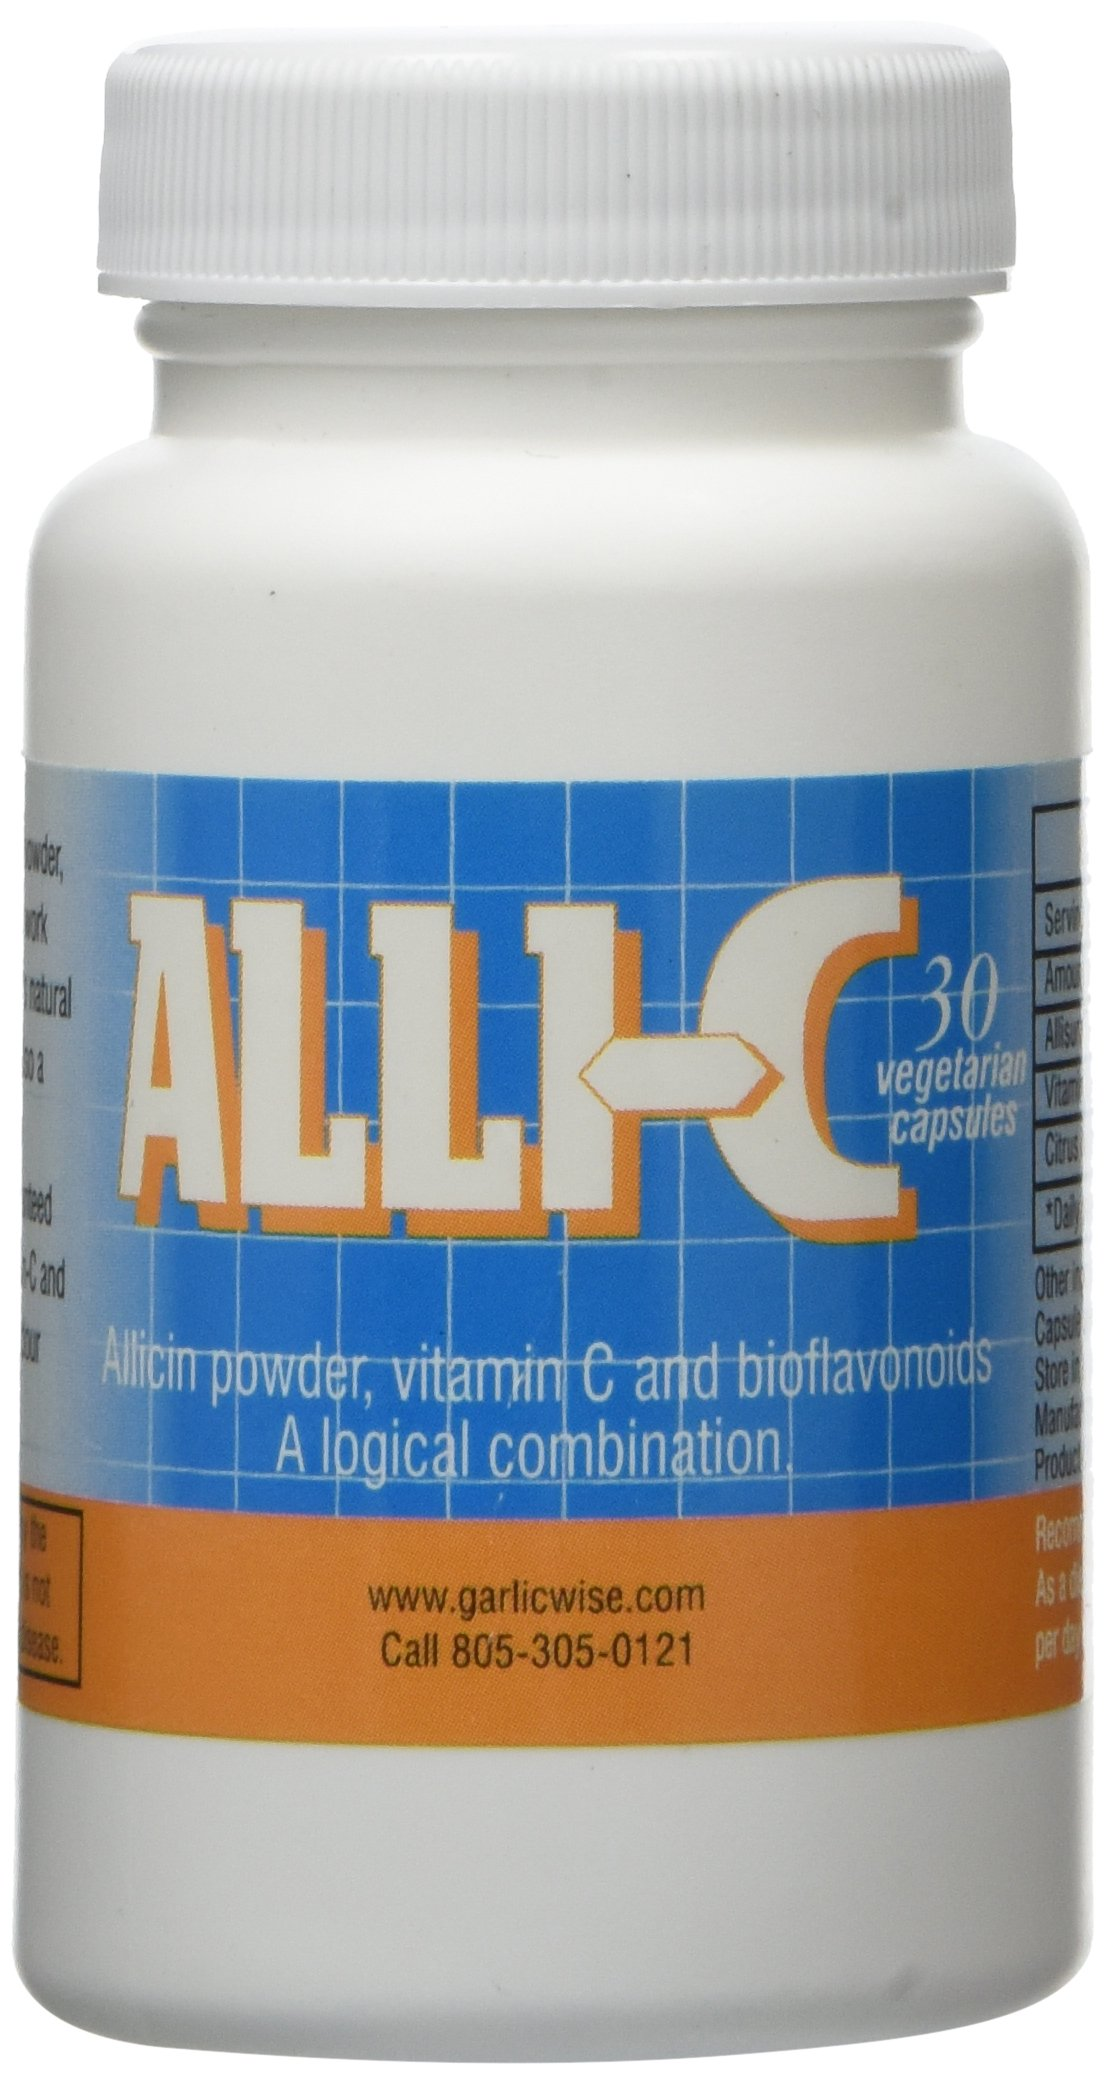 ALLI-C Allicin with Vitamin C and Bioflavonoids - 30 vegetarian capsules capture the power of garlic by ALLI-C (Image #1)